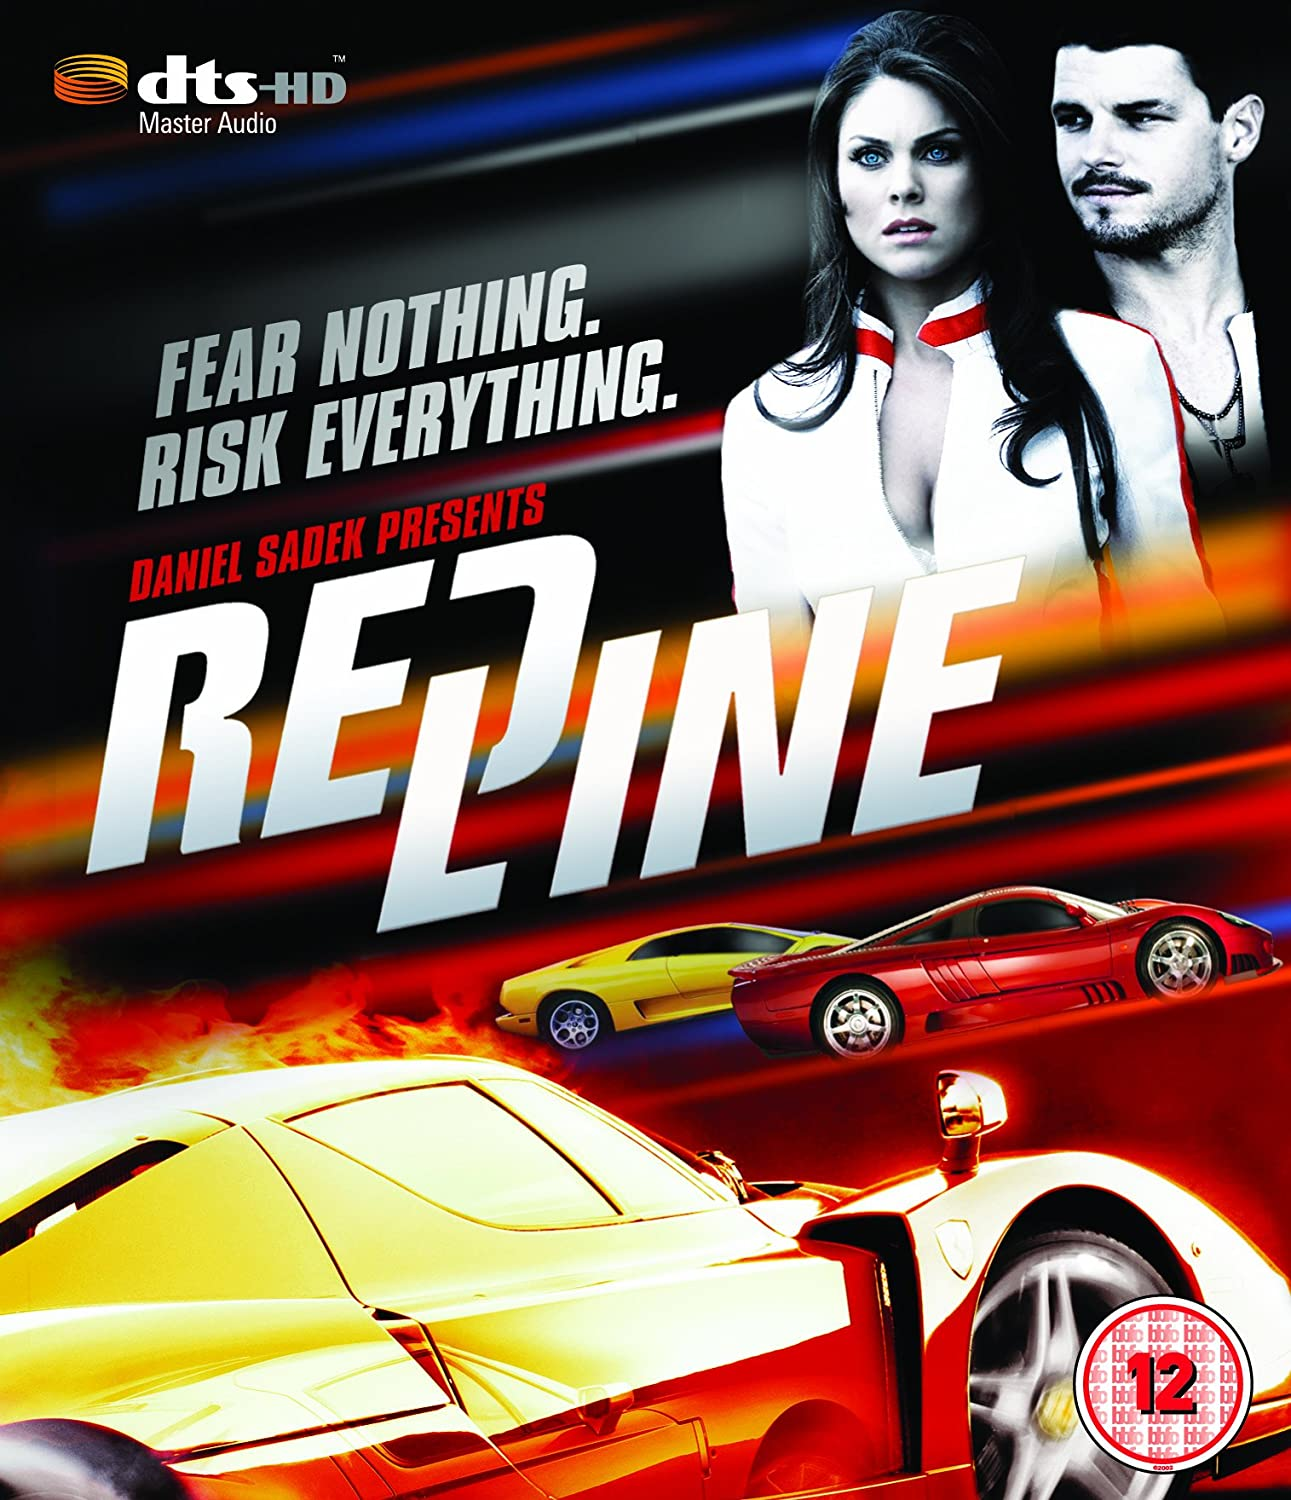 redline 2007 movie